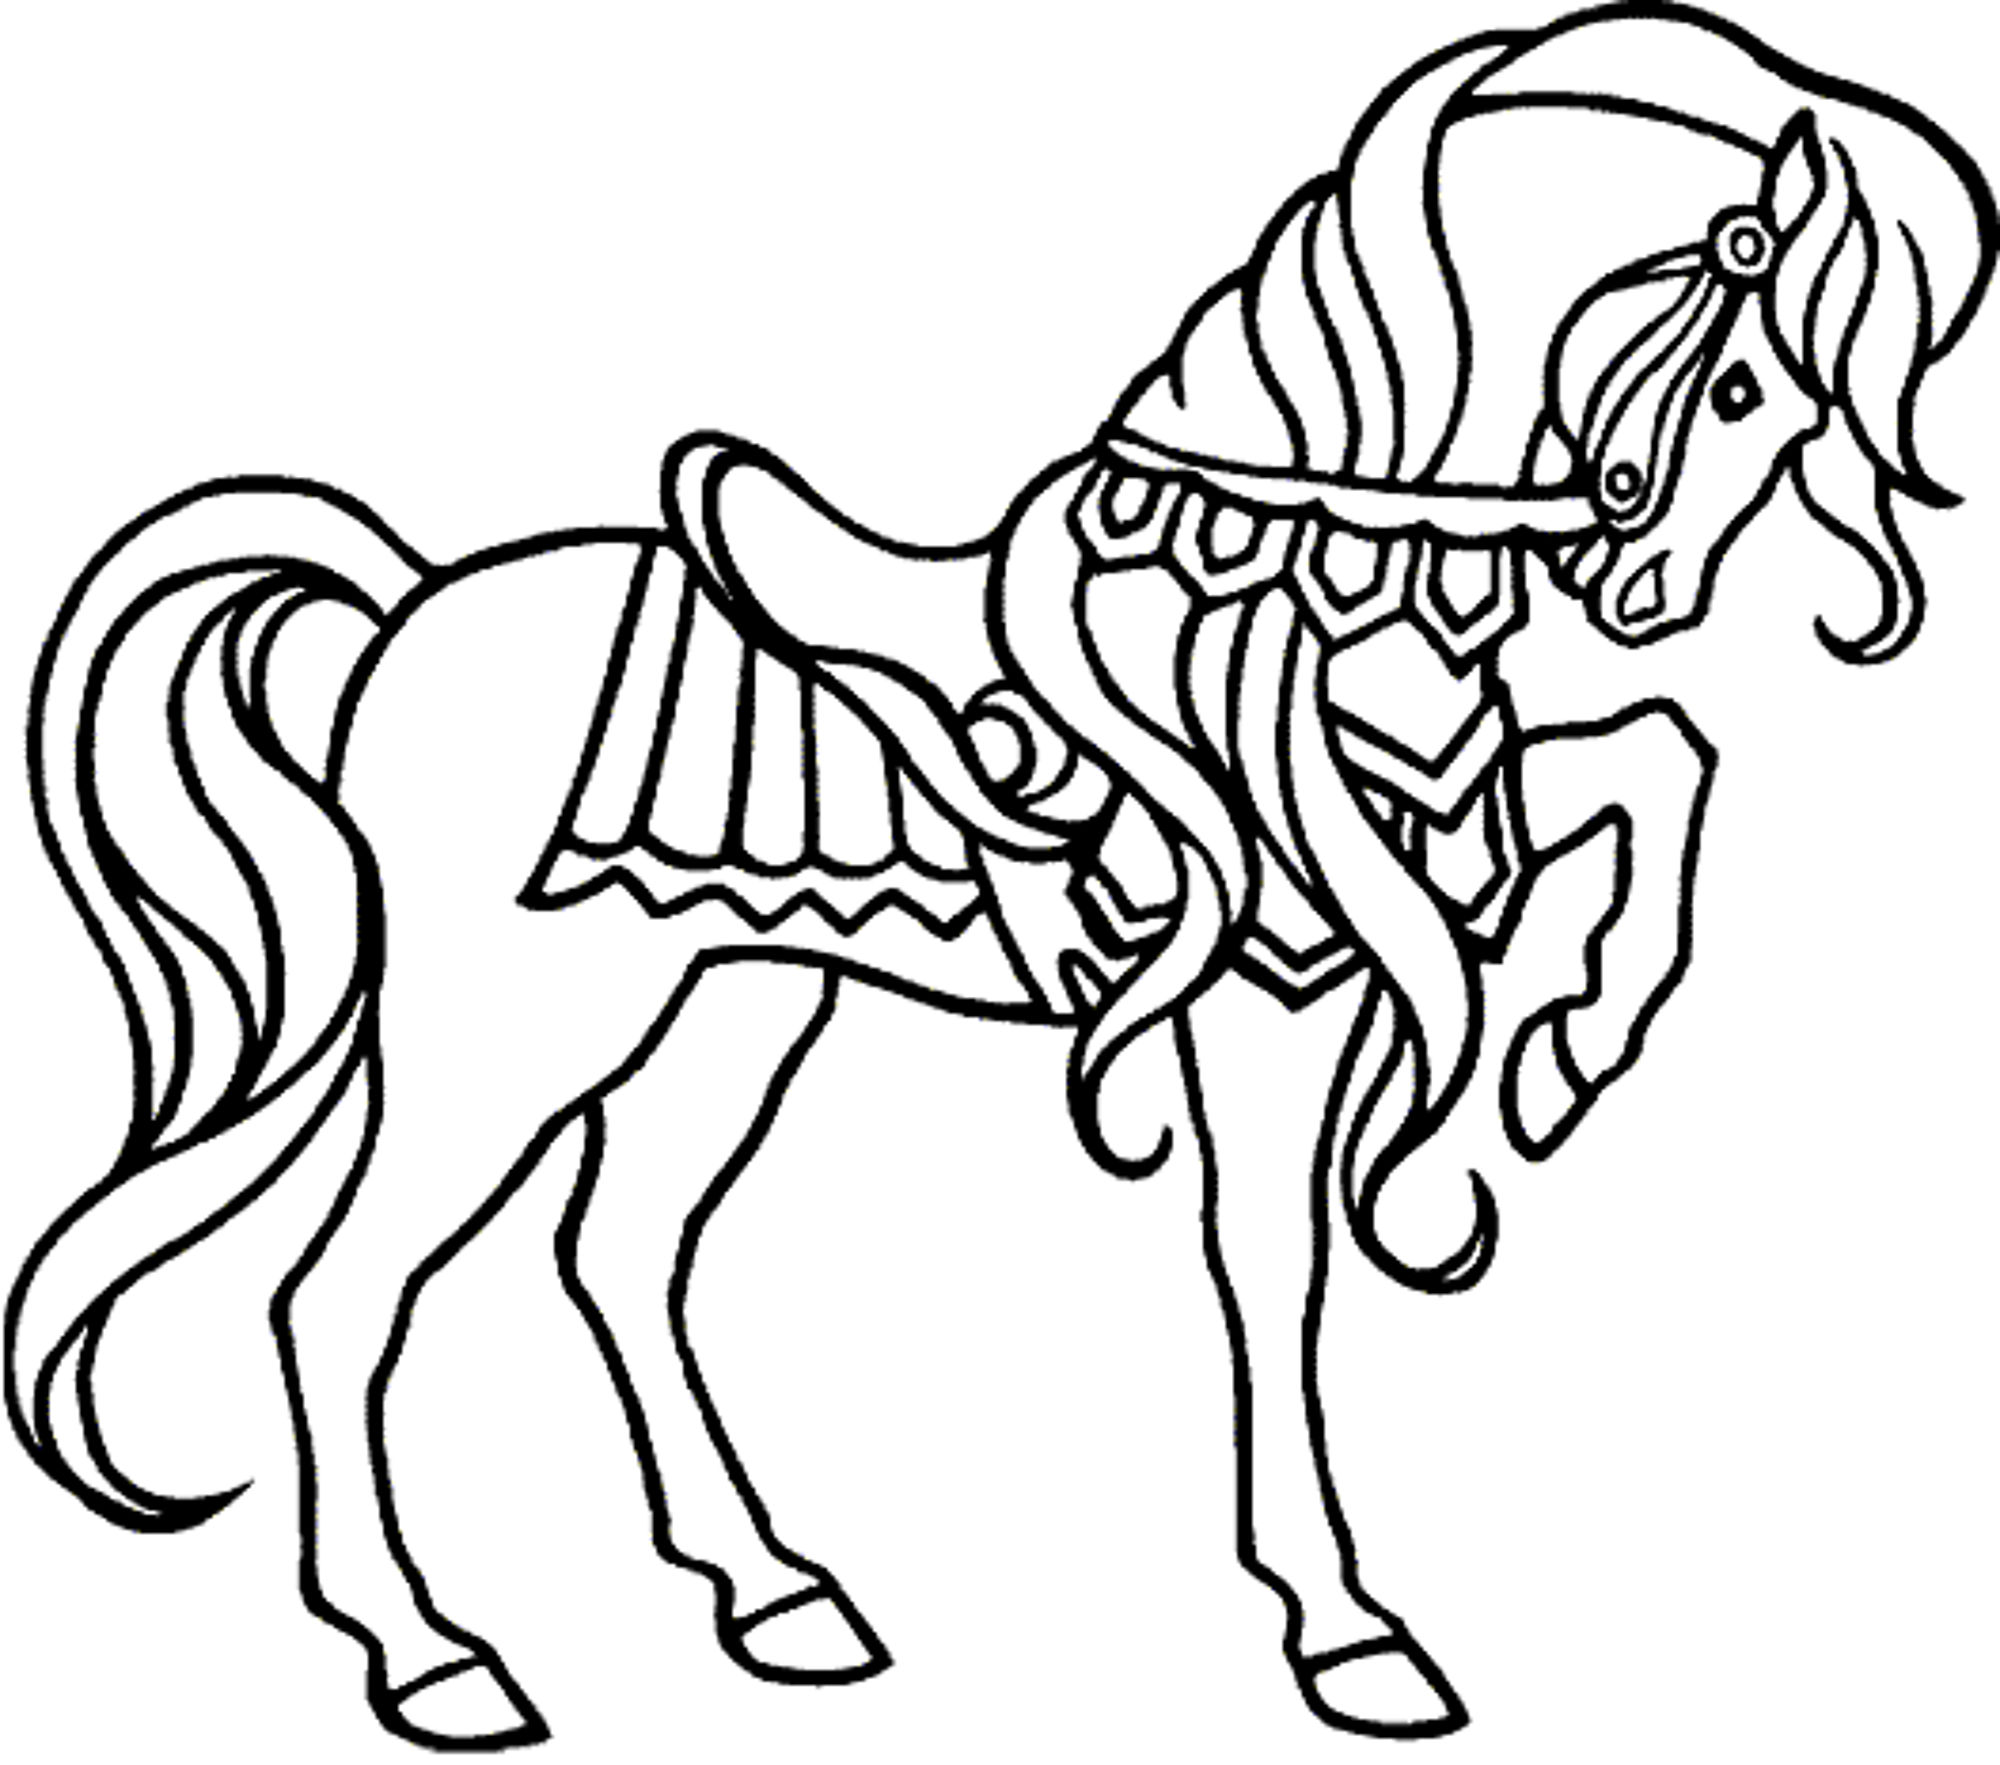 2000x1765 Horse Coloring Pages For Girls Download